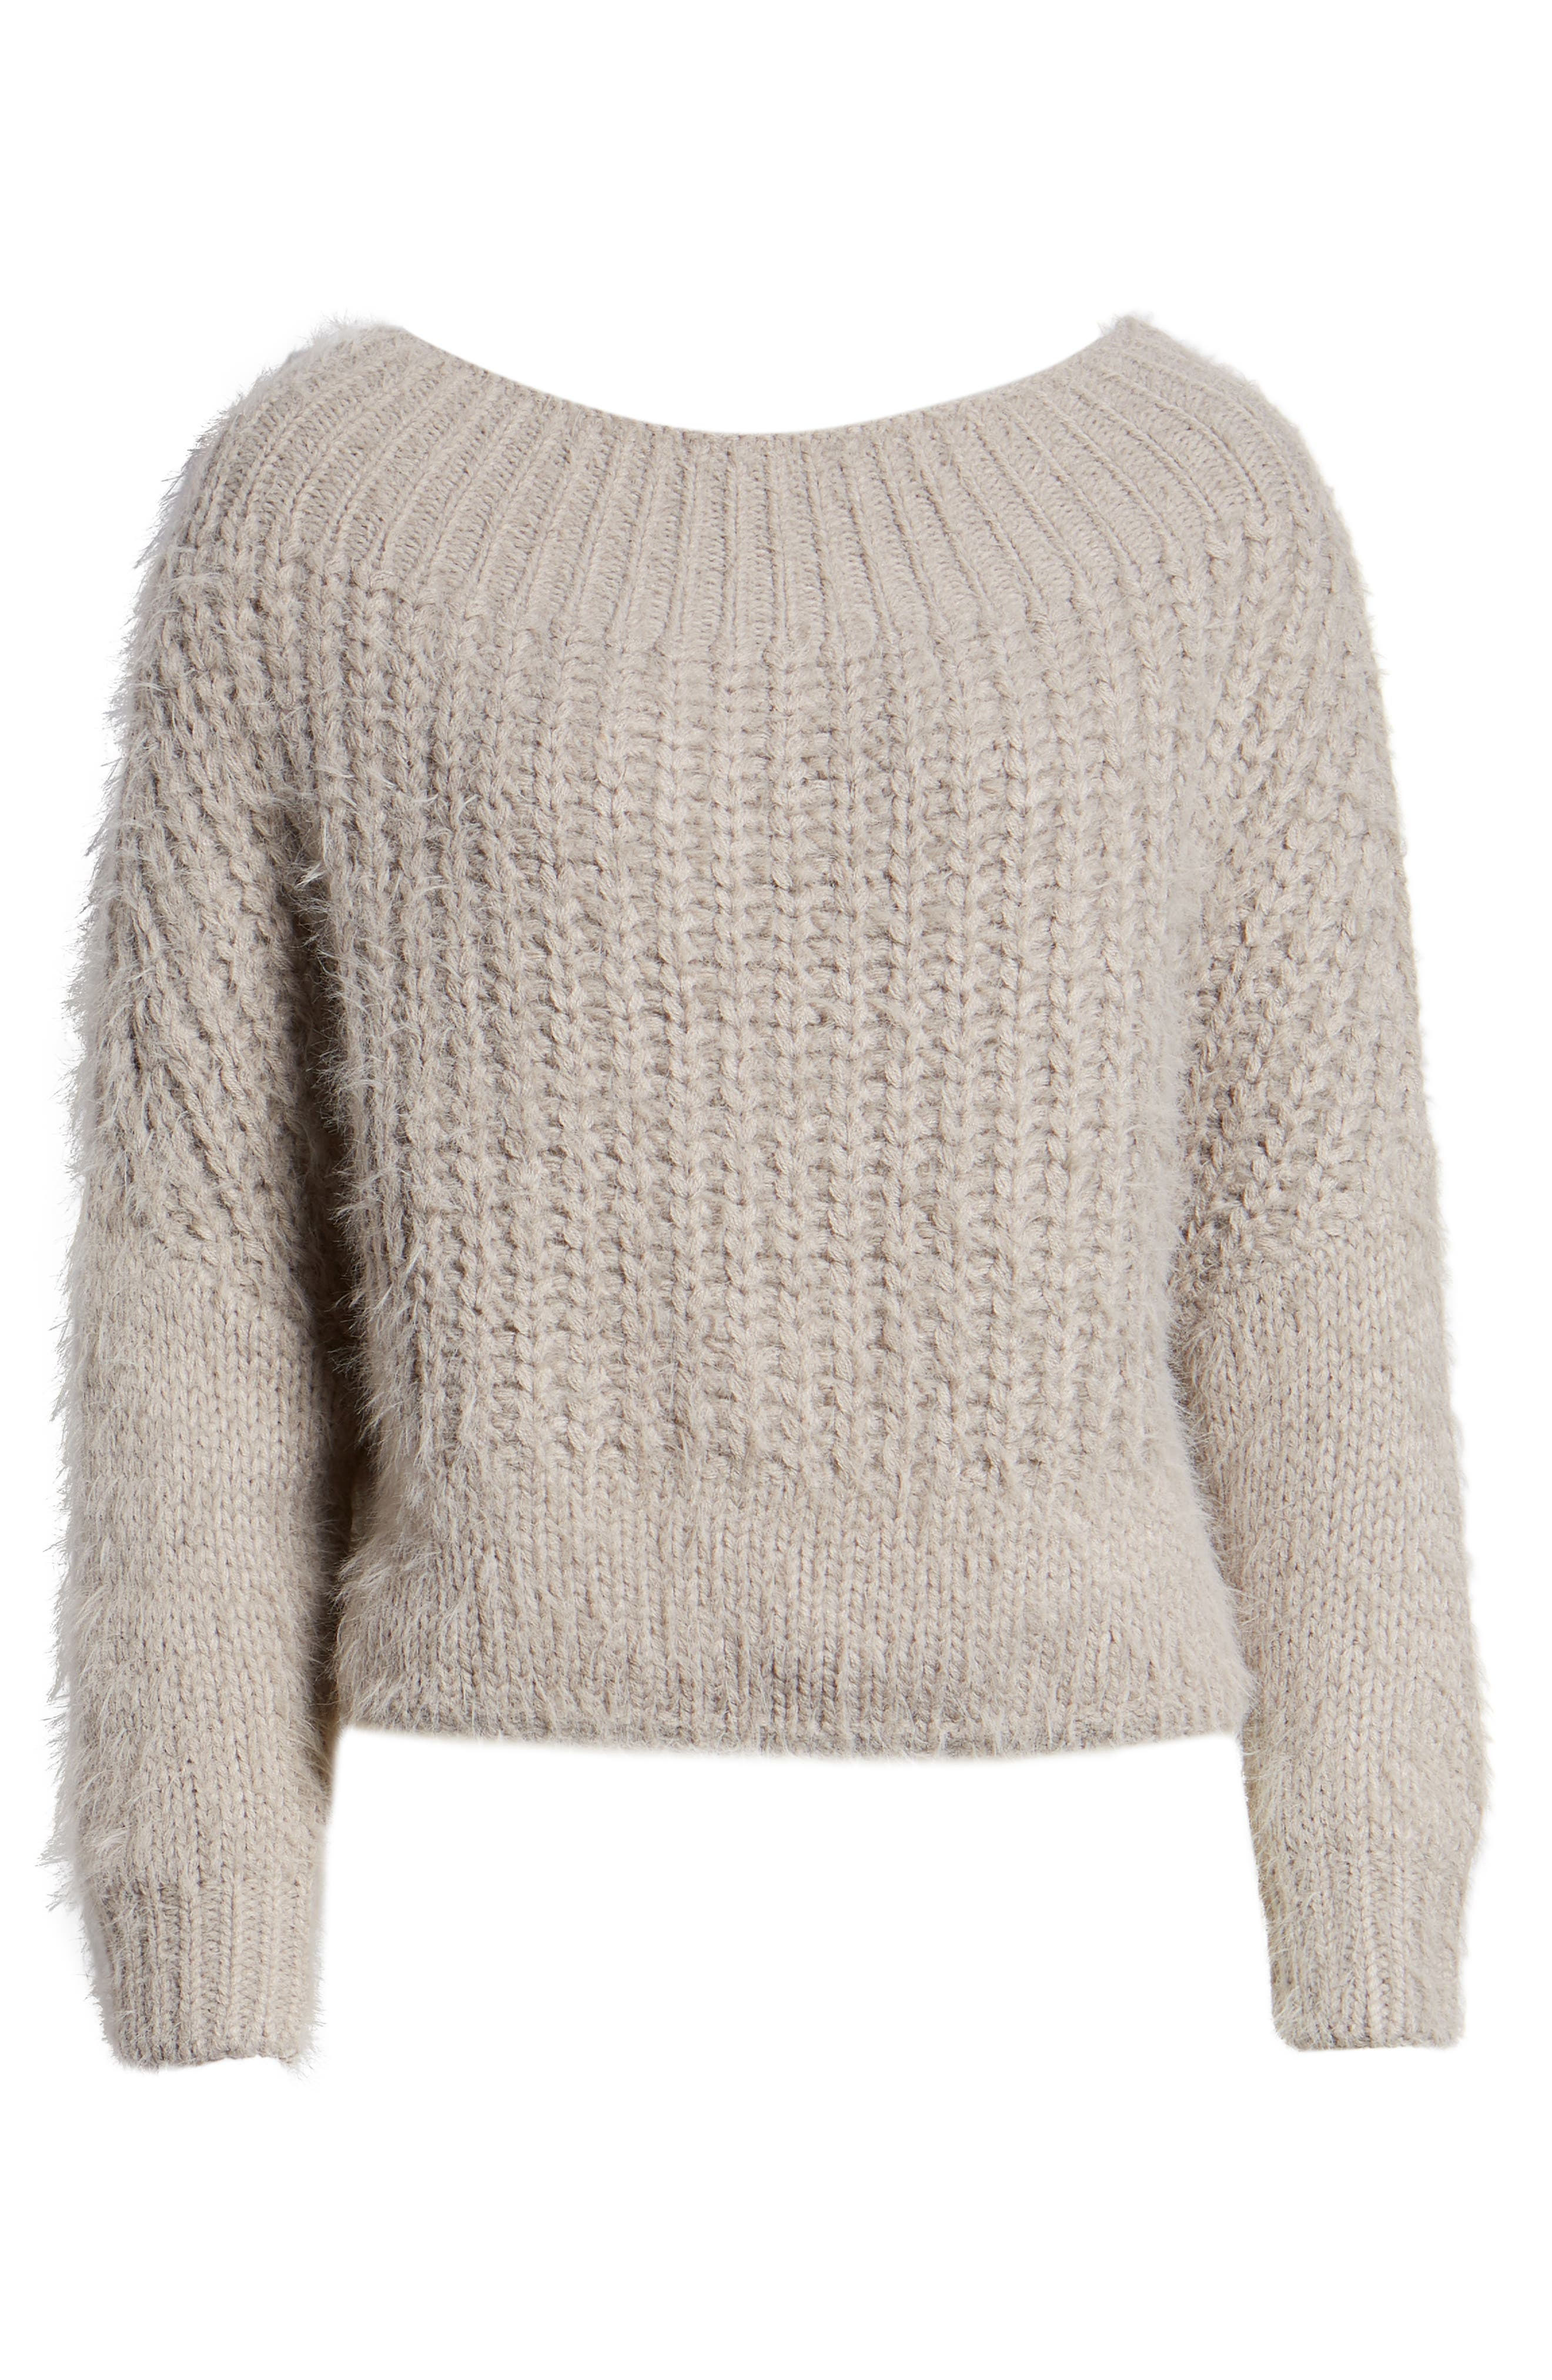 DREAMERS BY DEBUT,                             Boatneck Knit Pullover,                             Alternate thumbnail 6, color,                             MICRO GREY